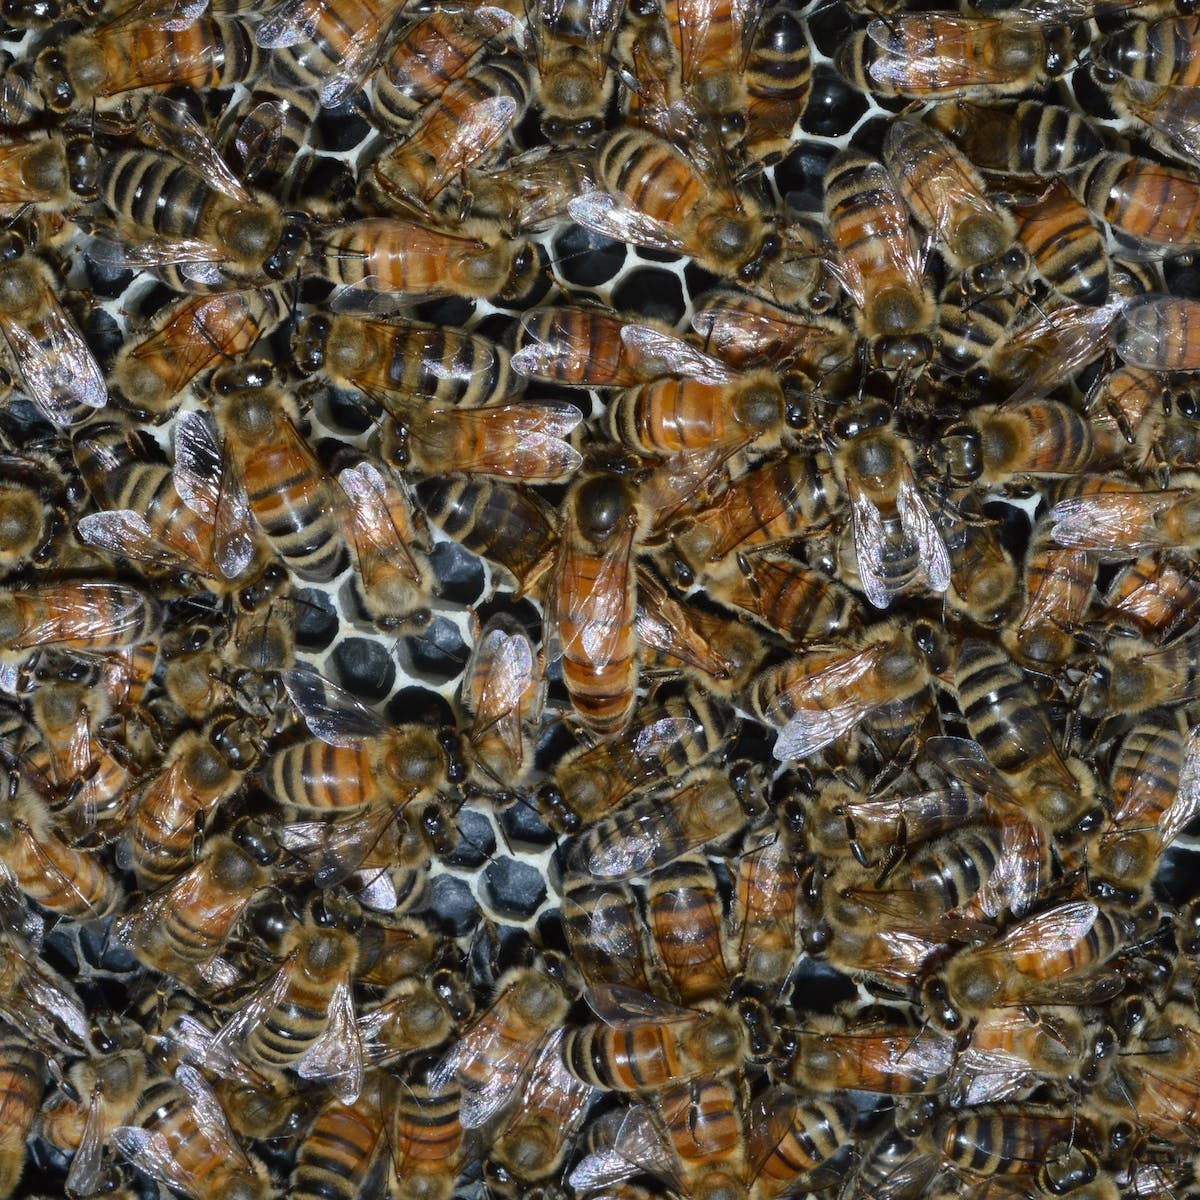 Honey bees can't practice social distancing, so they stay healthy ...